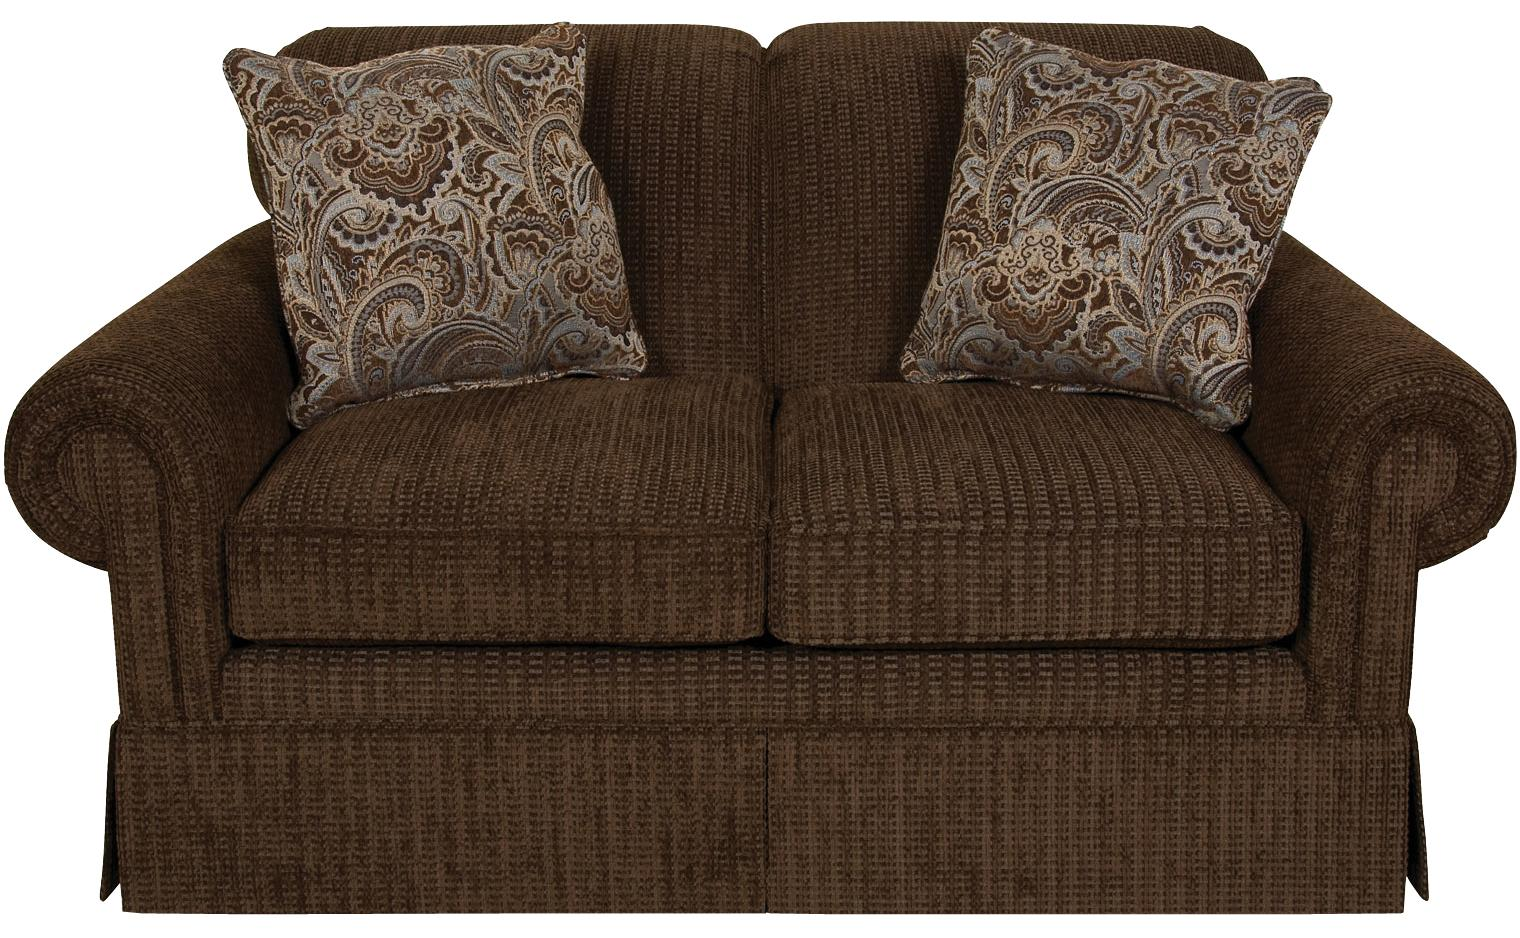 England Nancy Loveseat - Item Number: 6556